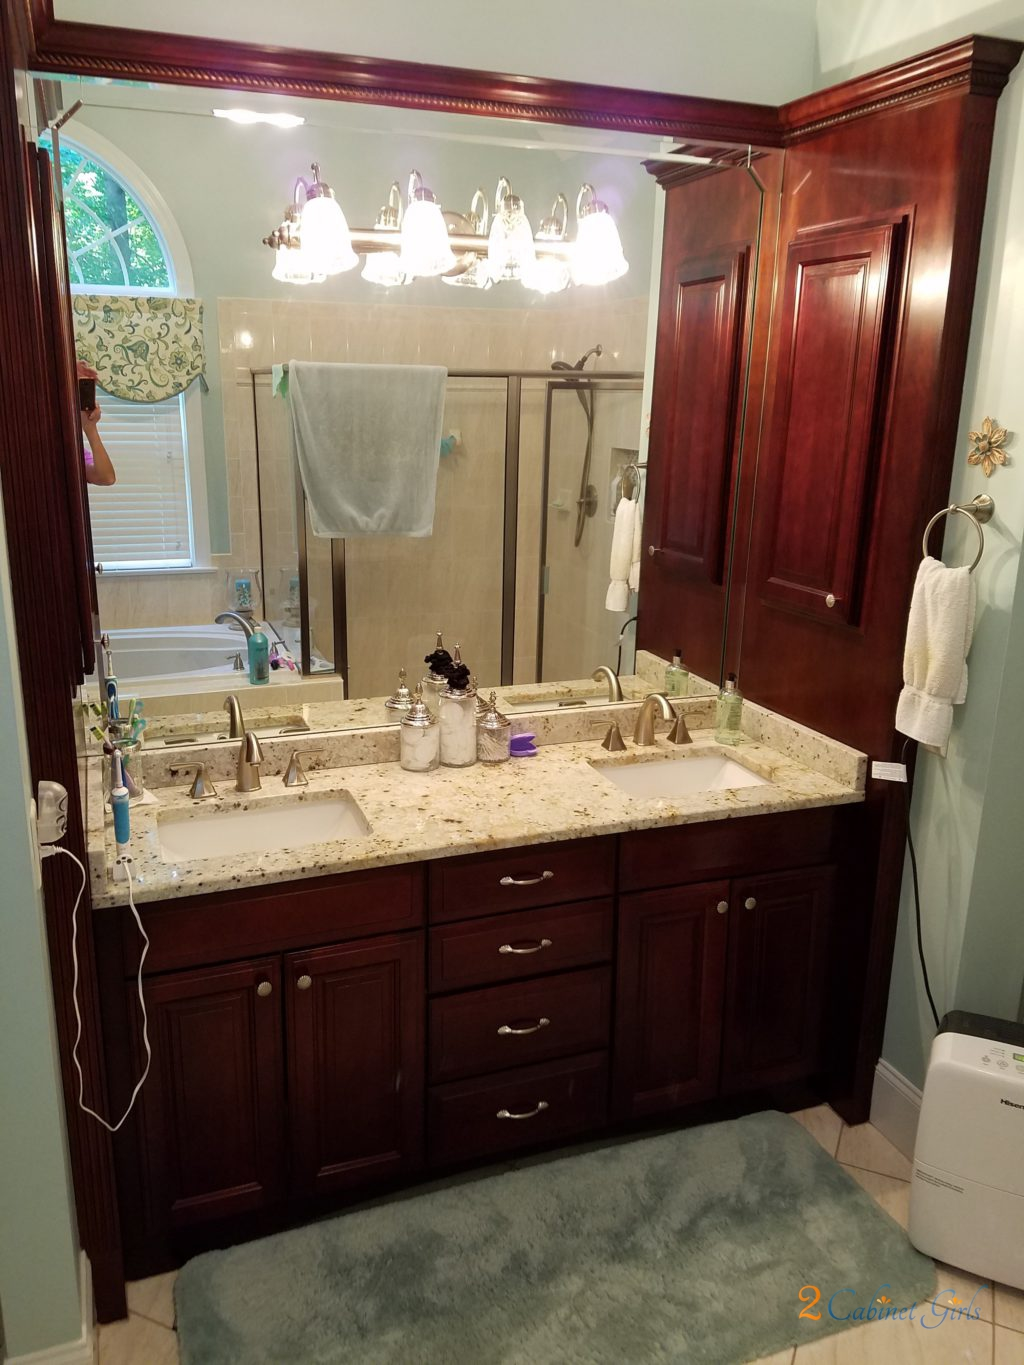 Chantilly Lace Master Bath 2 Cabinet Girls